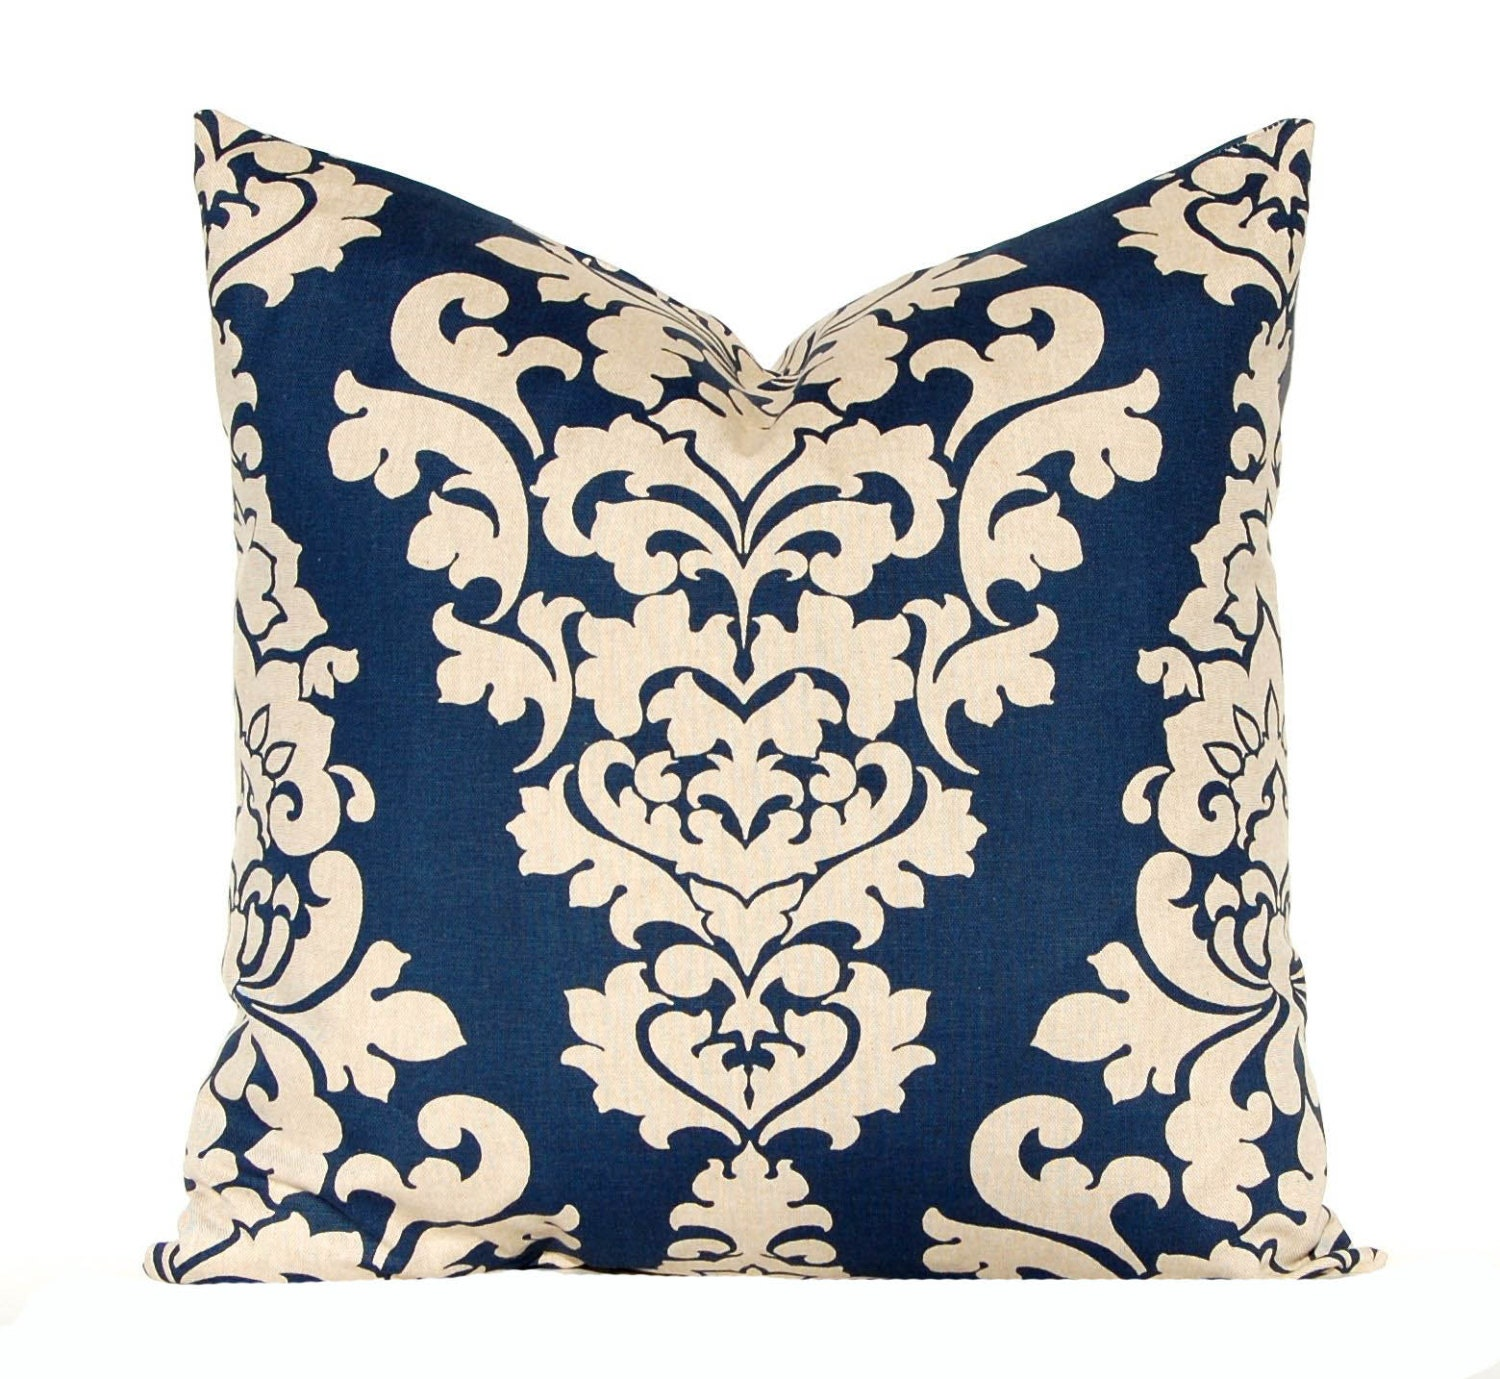 Navy Blue Decorative Pillow Covers : Navy Blue Pillow Covers Linen Pillows by CompanyTwentySix on Etsy